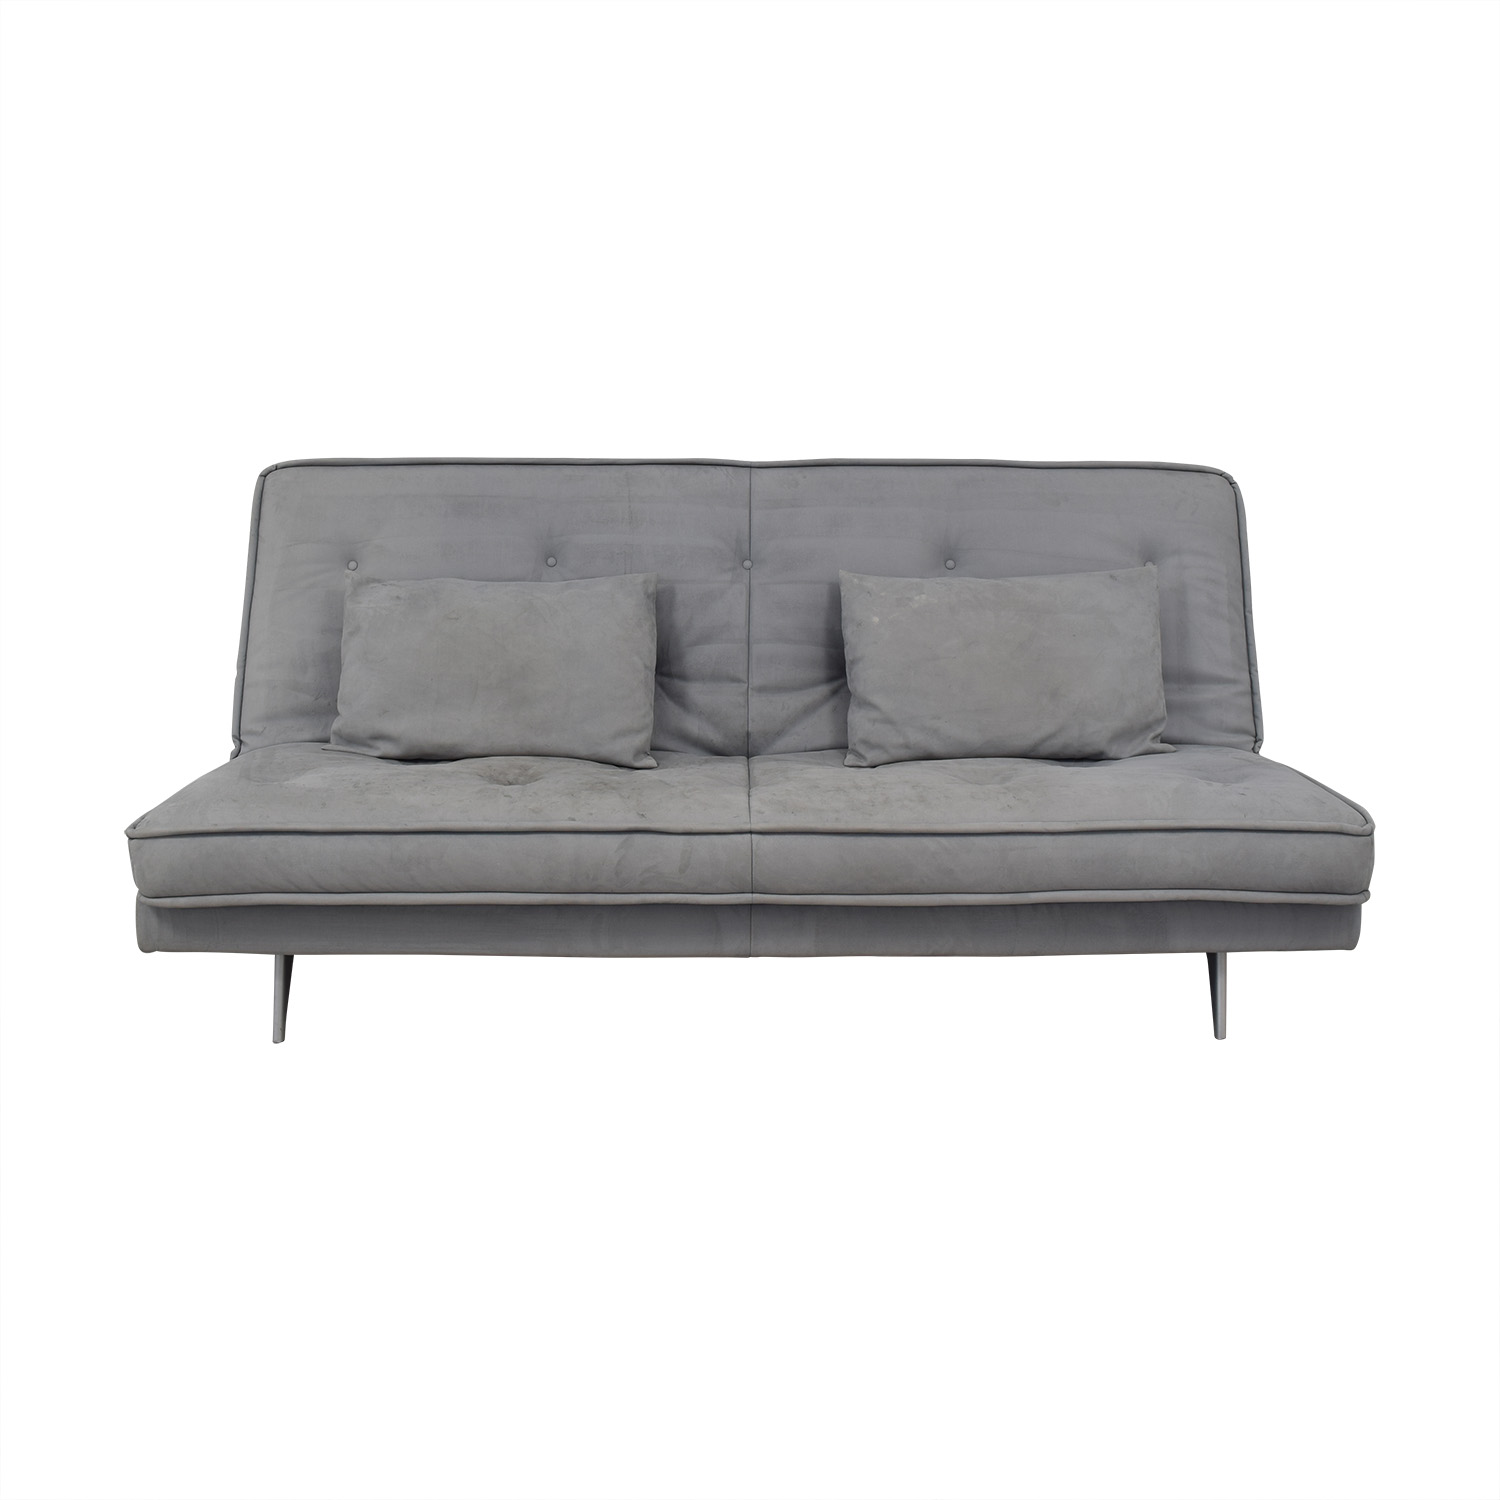 Ligne Roset Ligne Roset Nomade Express Sofa Bed second hand